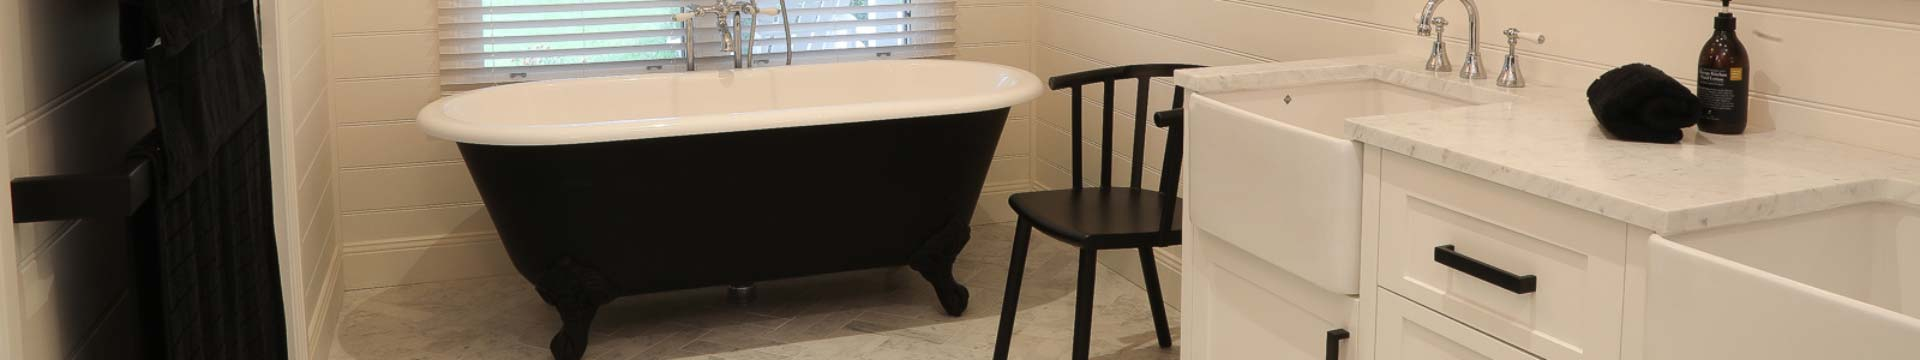 Black and white bathroom with marble floor